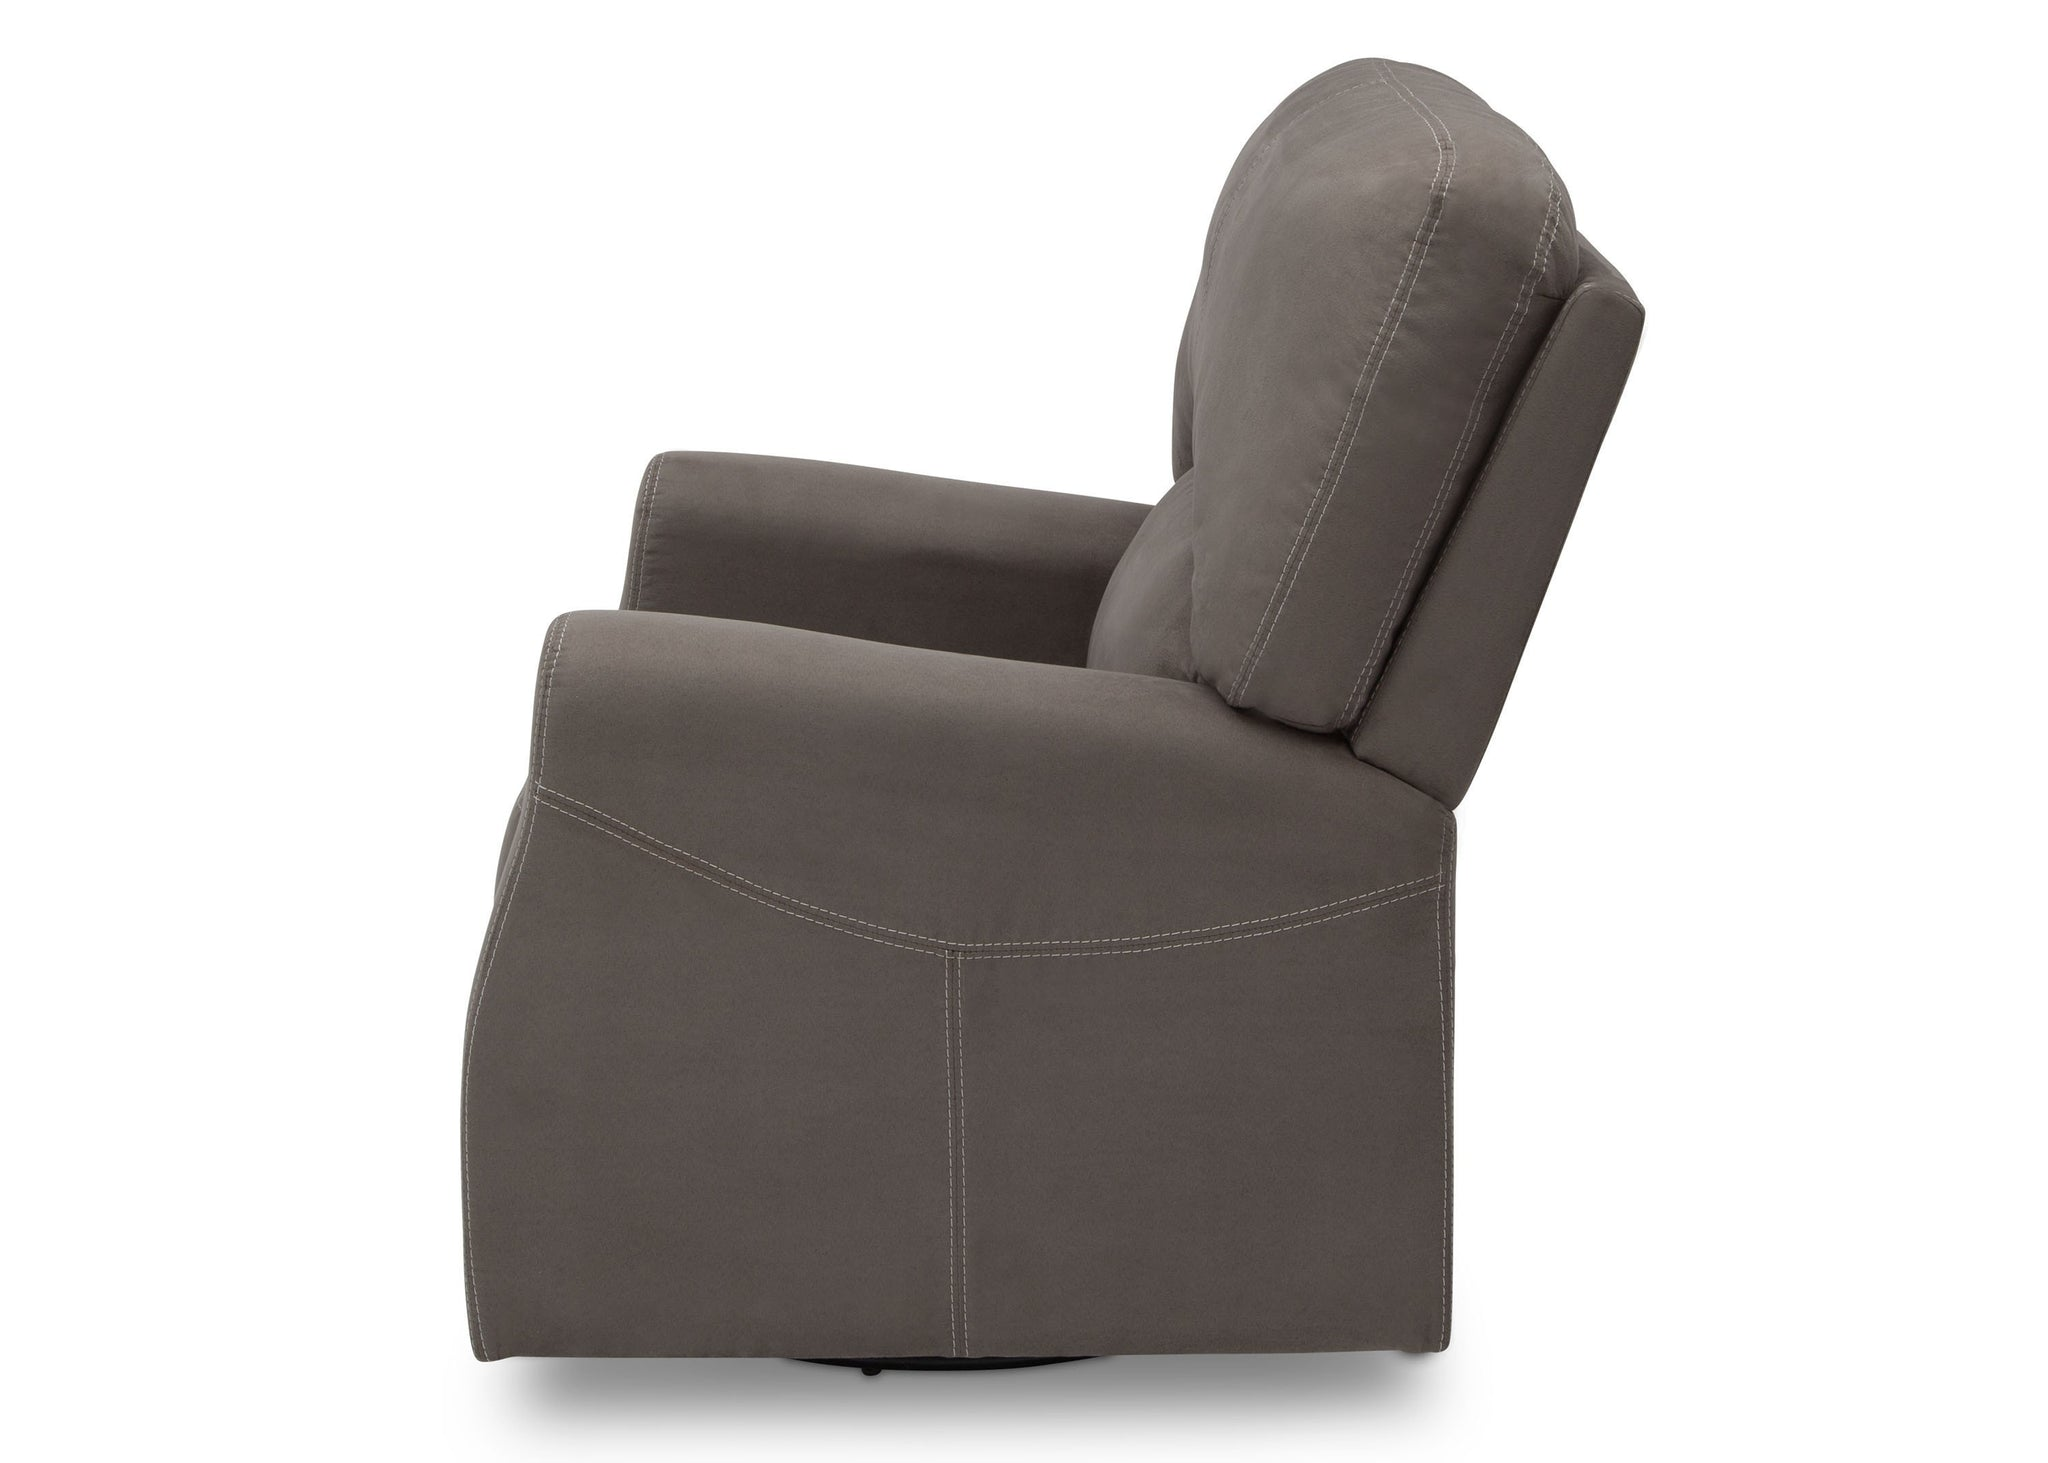 Delta Children Graphite (018) Marshall Nursery Glider Swivel Rocker Chair, left side view, a4a